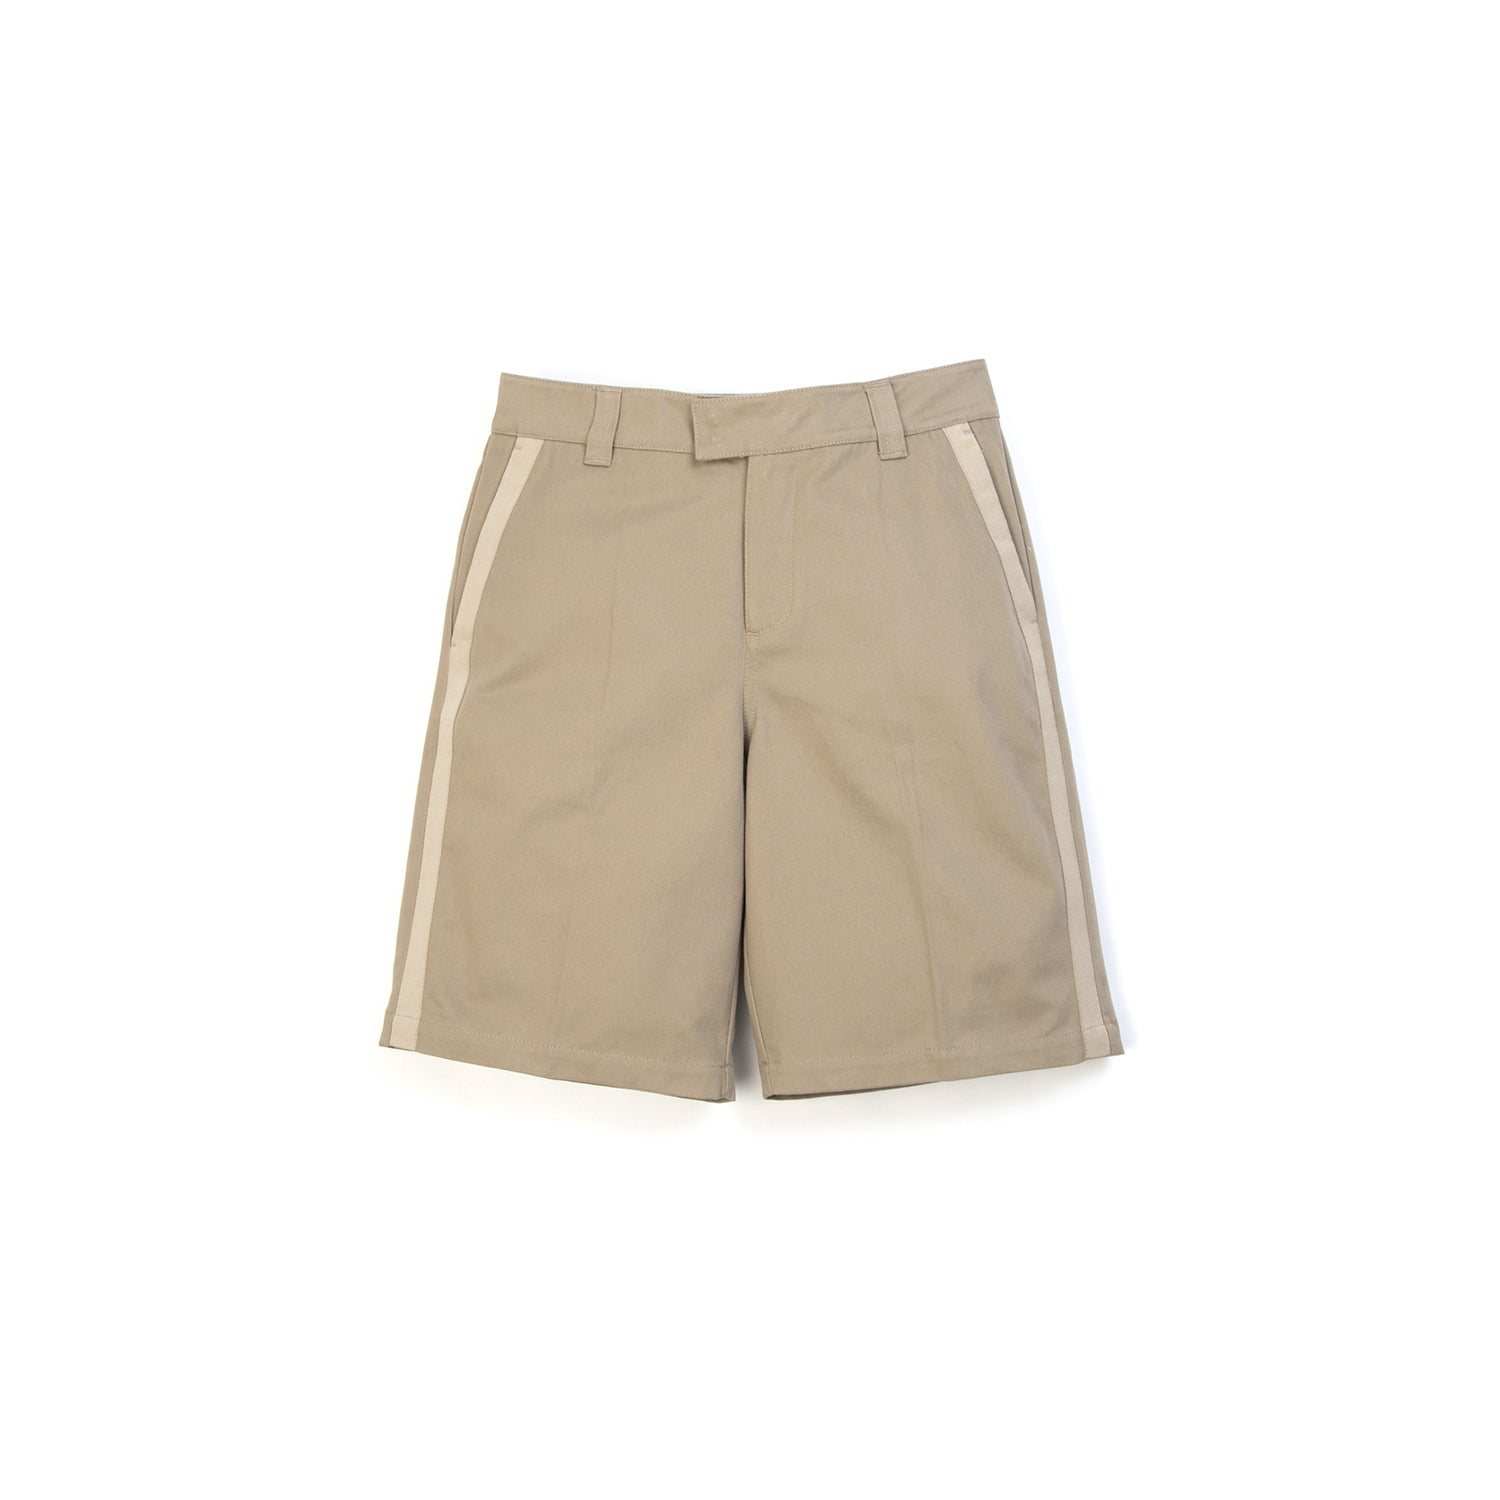 Soulland Davidov Shorts Light Beige